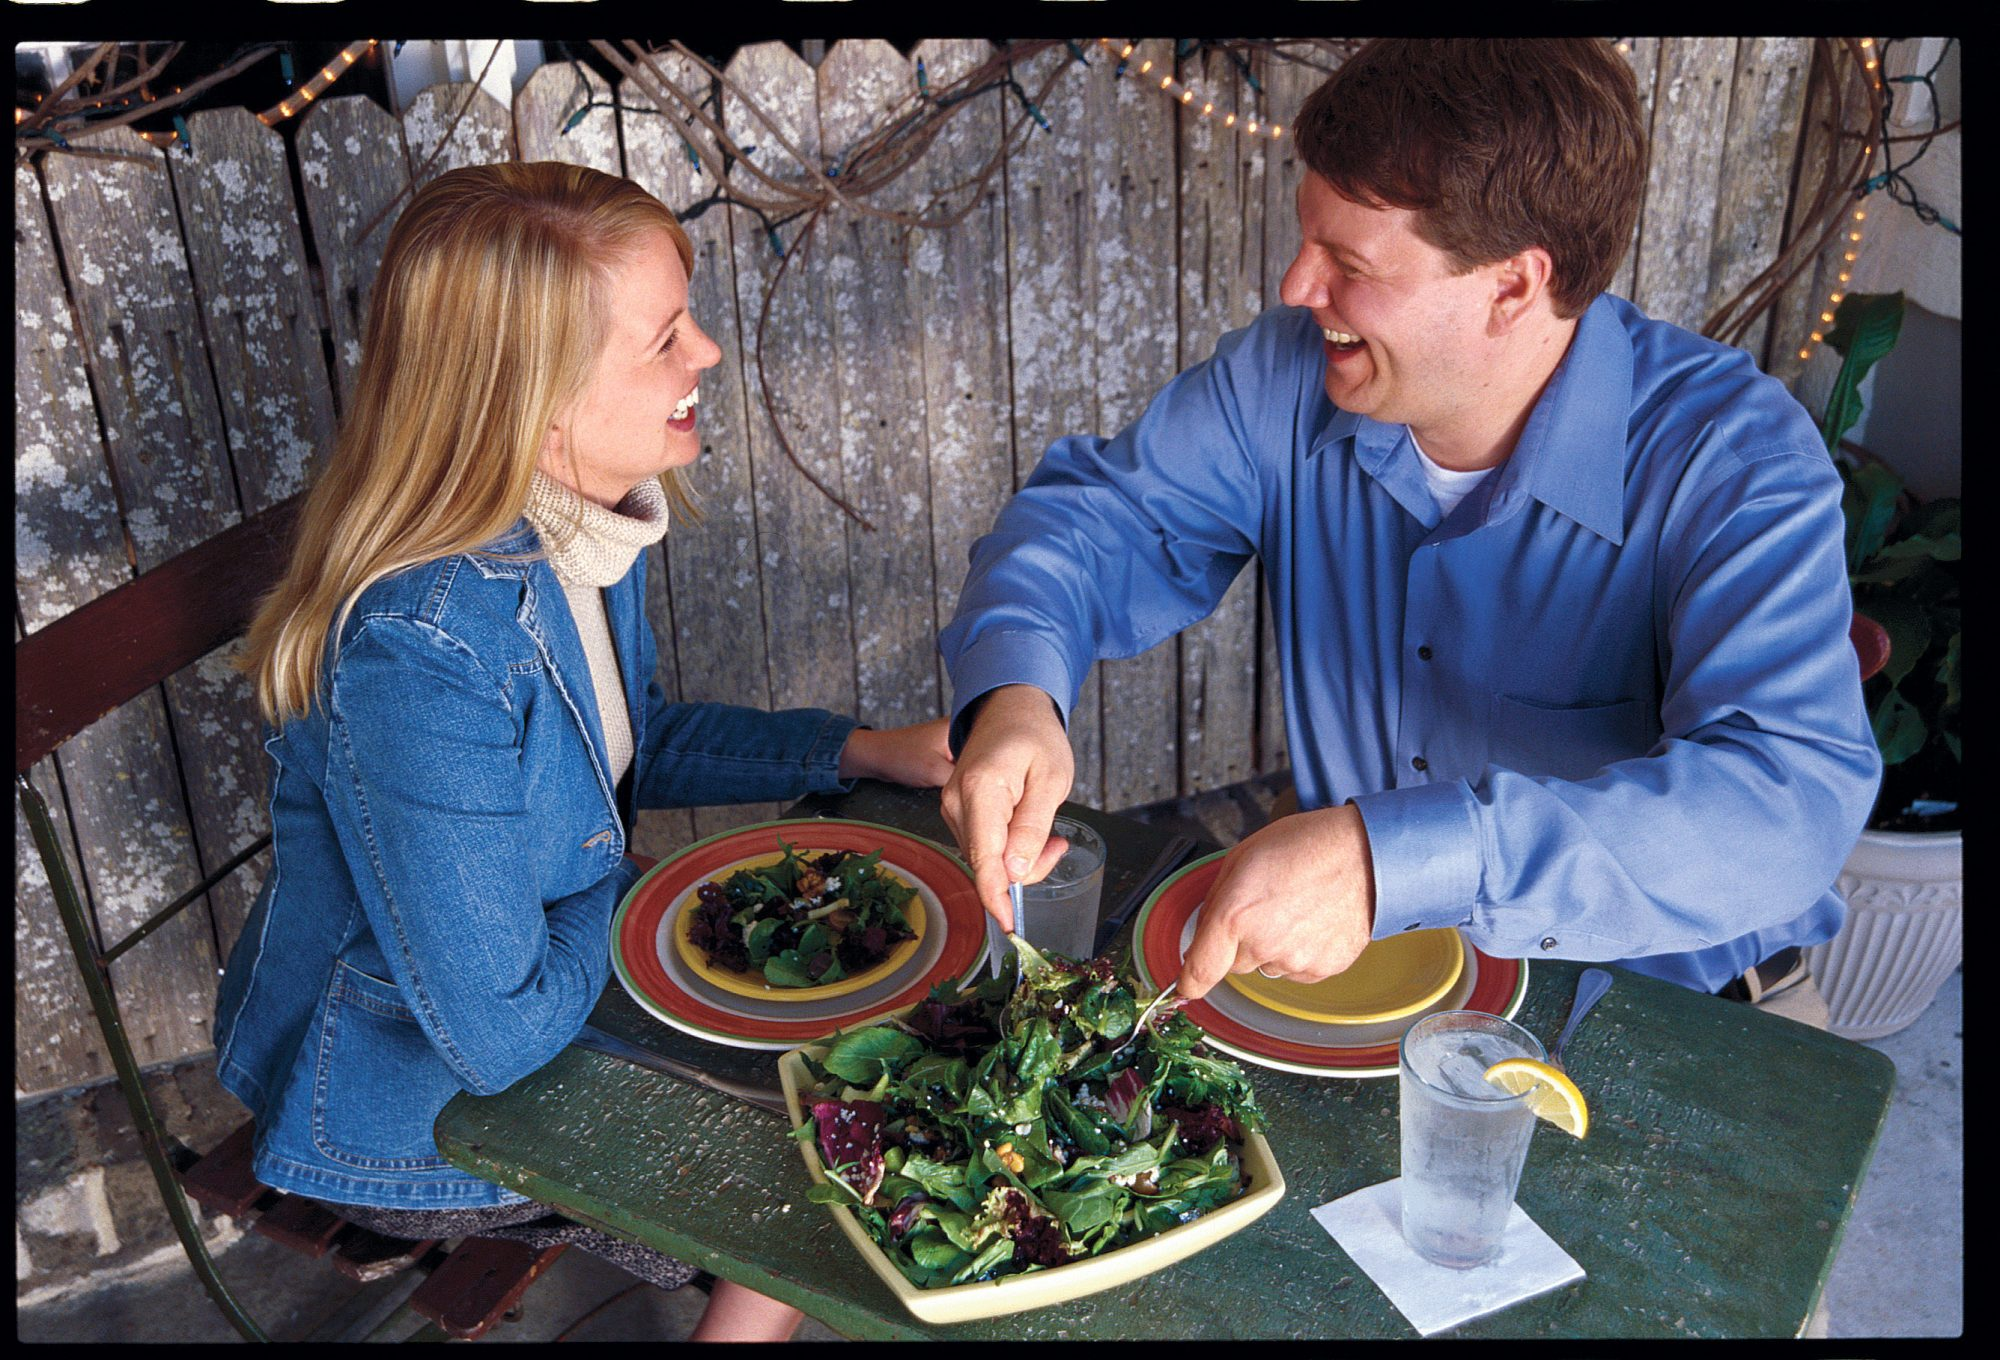 Stay Slender With Smart Dining Out Strategies